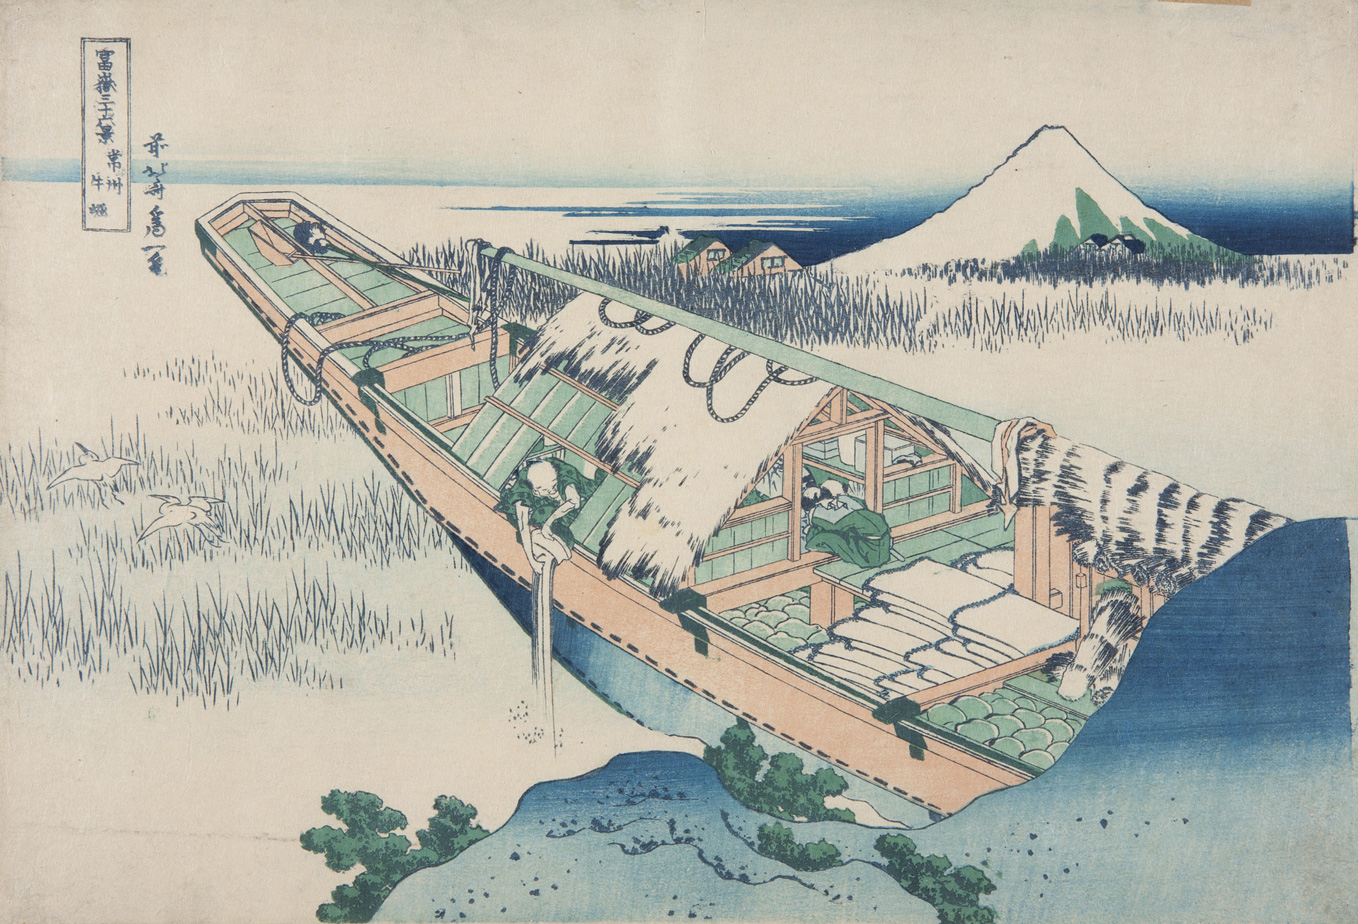 Japanese print of a barge, half of which is visible. A man is emptying a bucket of water over the side. Two storks fly off. In the background we can see a mountain and houses.